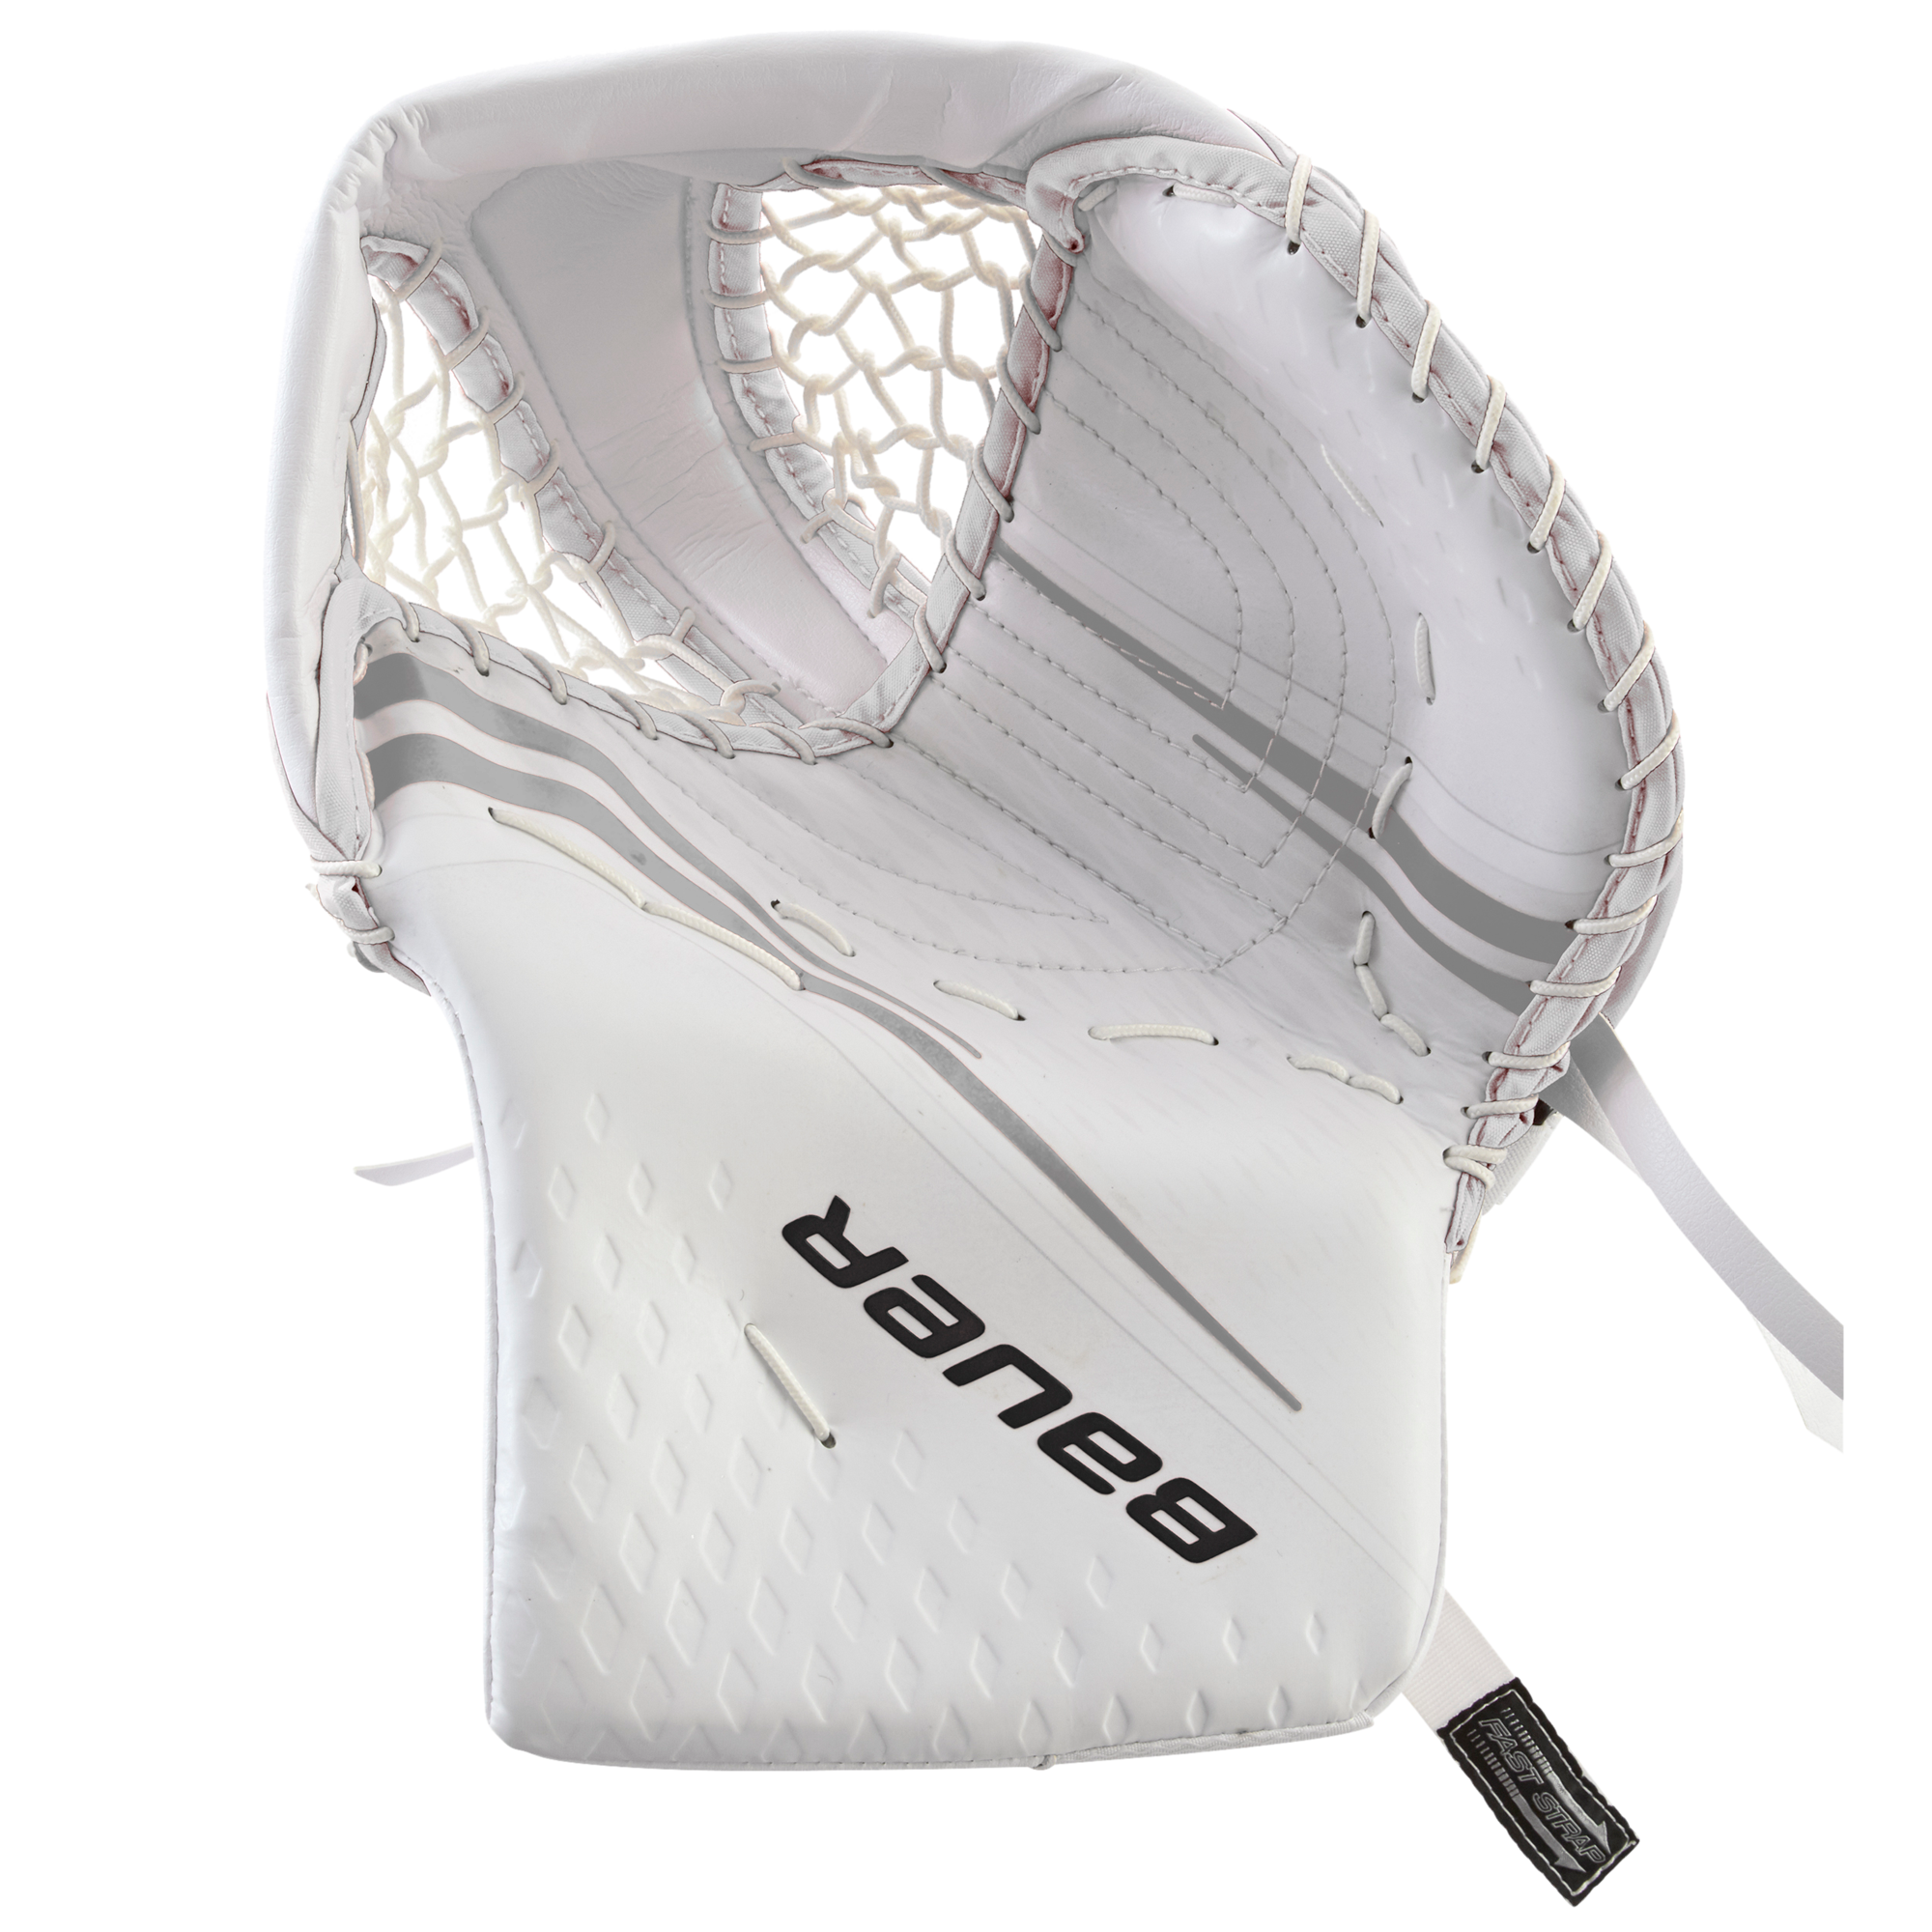 Vapor 2X PRO Catch Glove Senior,,moyen